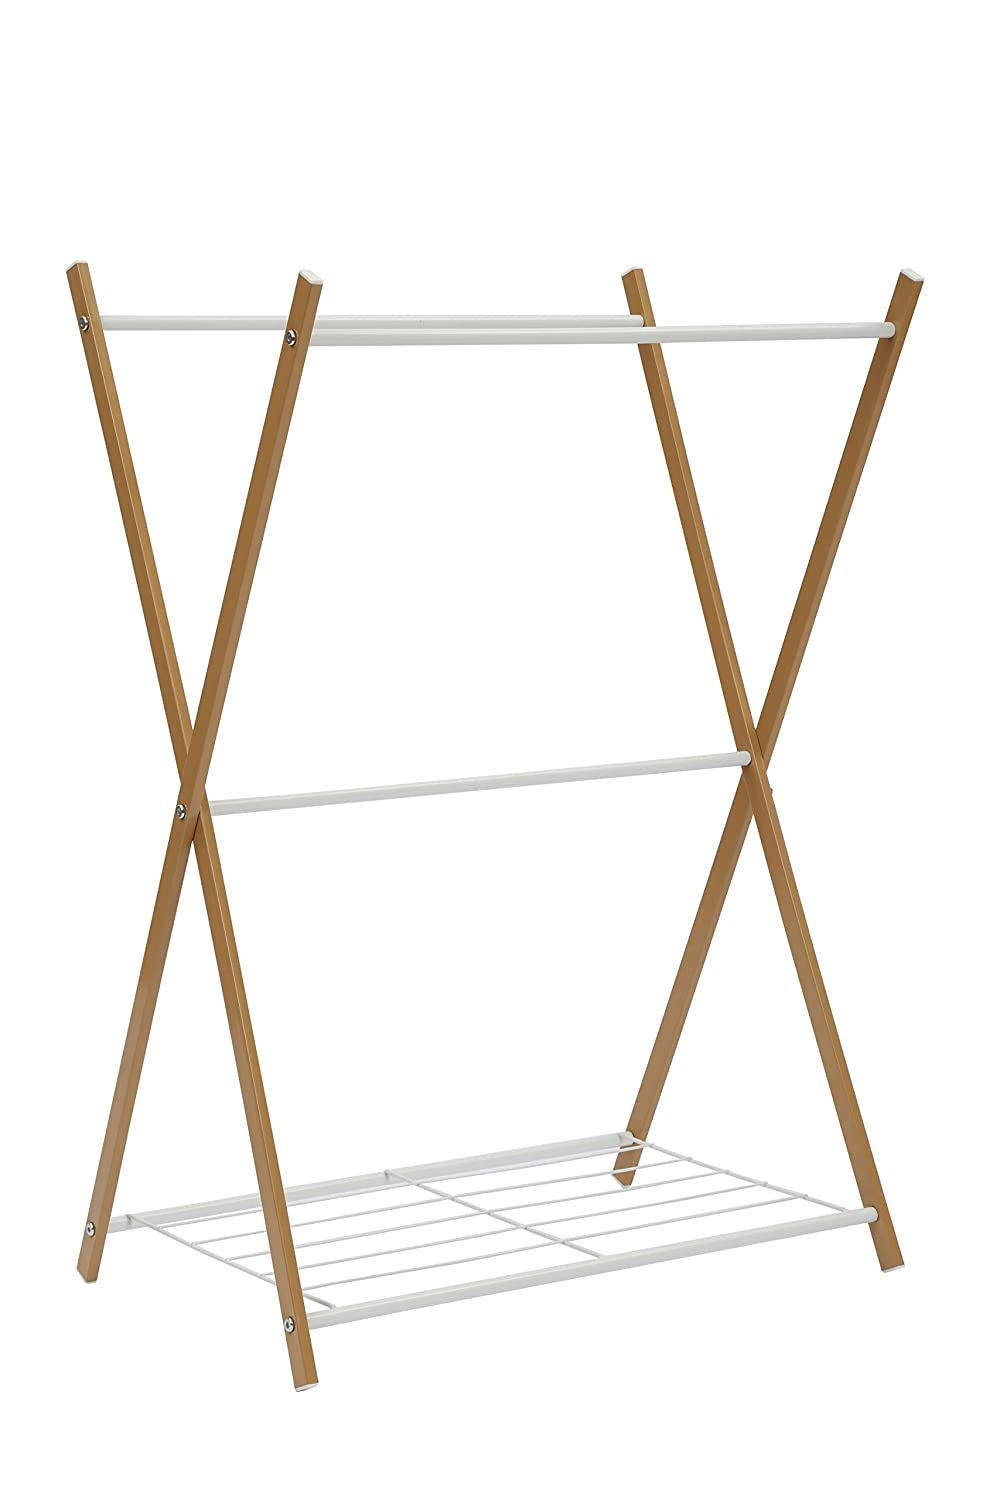 Home-Like Standing Towel Stand Clothes Hanging Rail Garment Rack Freestanding Rail Holder Shelf Bathroom Storage Stand Drying Rack Laundry Towels Hanger 66x47x86cm